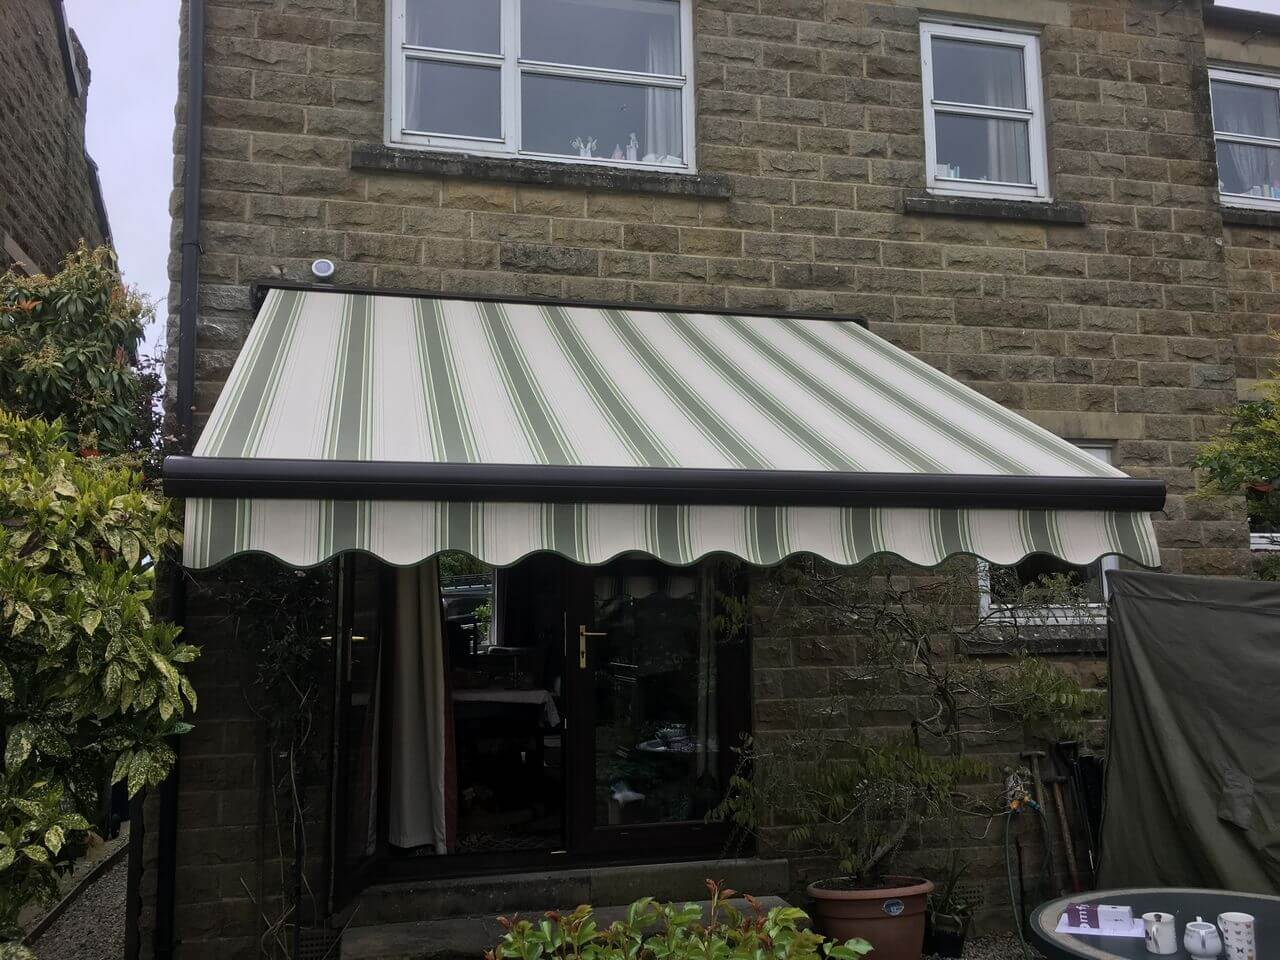 Brown electric harol patio awning fitted to a stone house with french doors